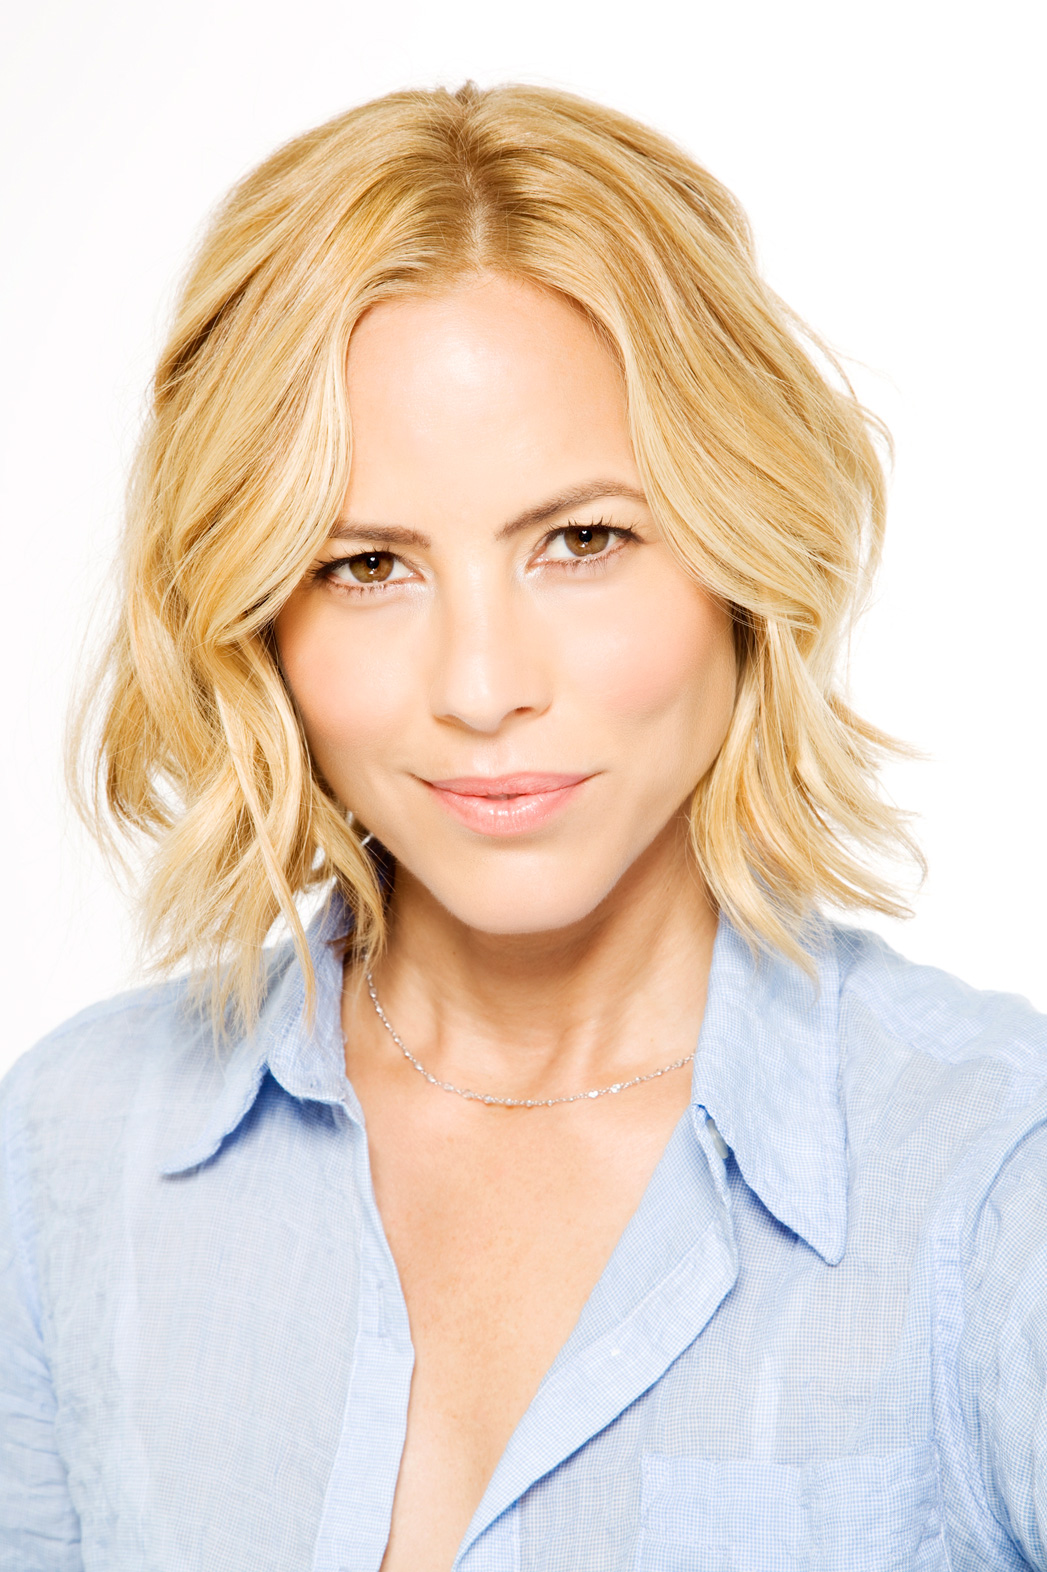 Maria Bello Headshot - P 2014